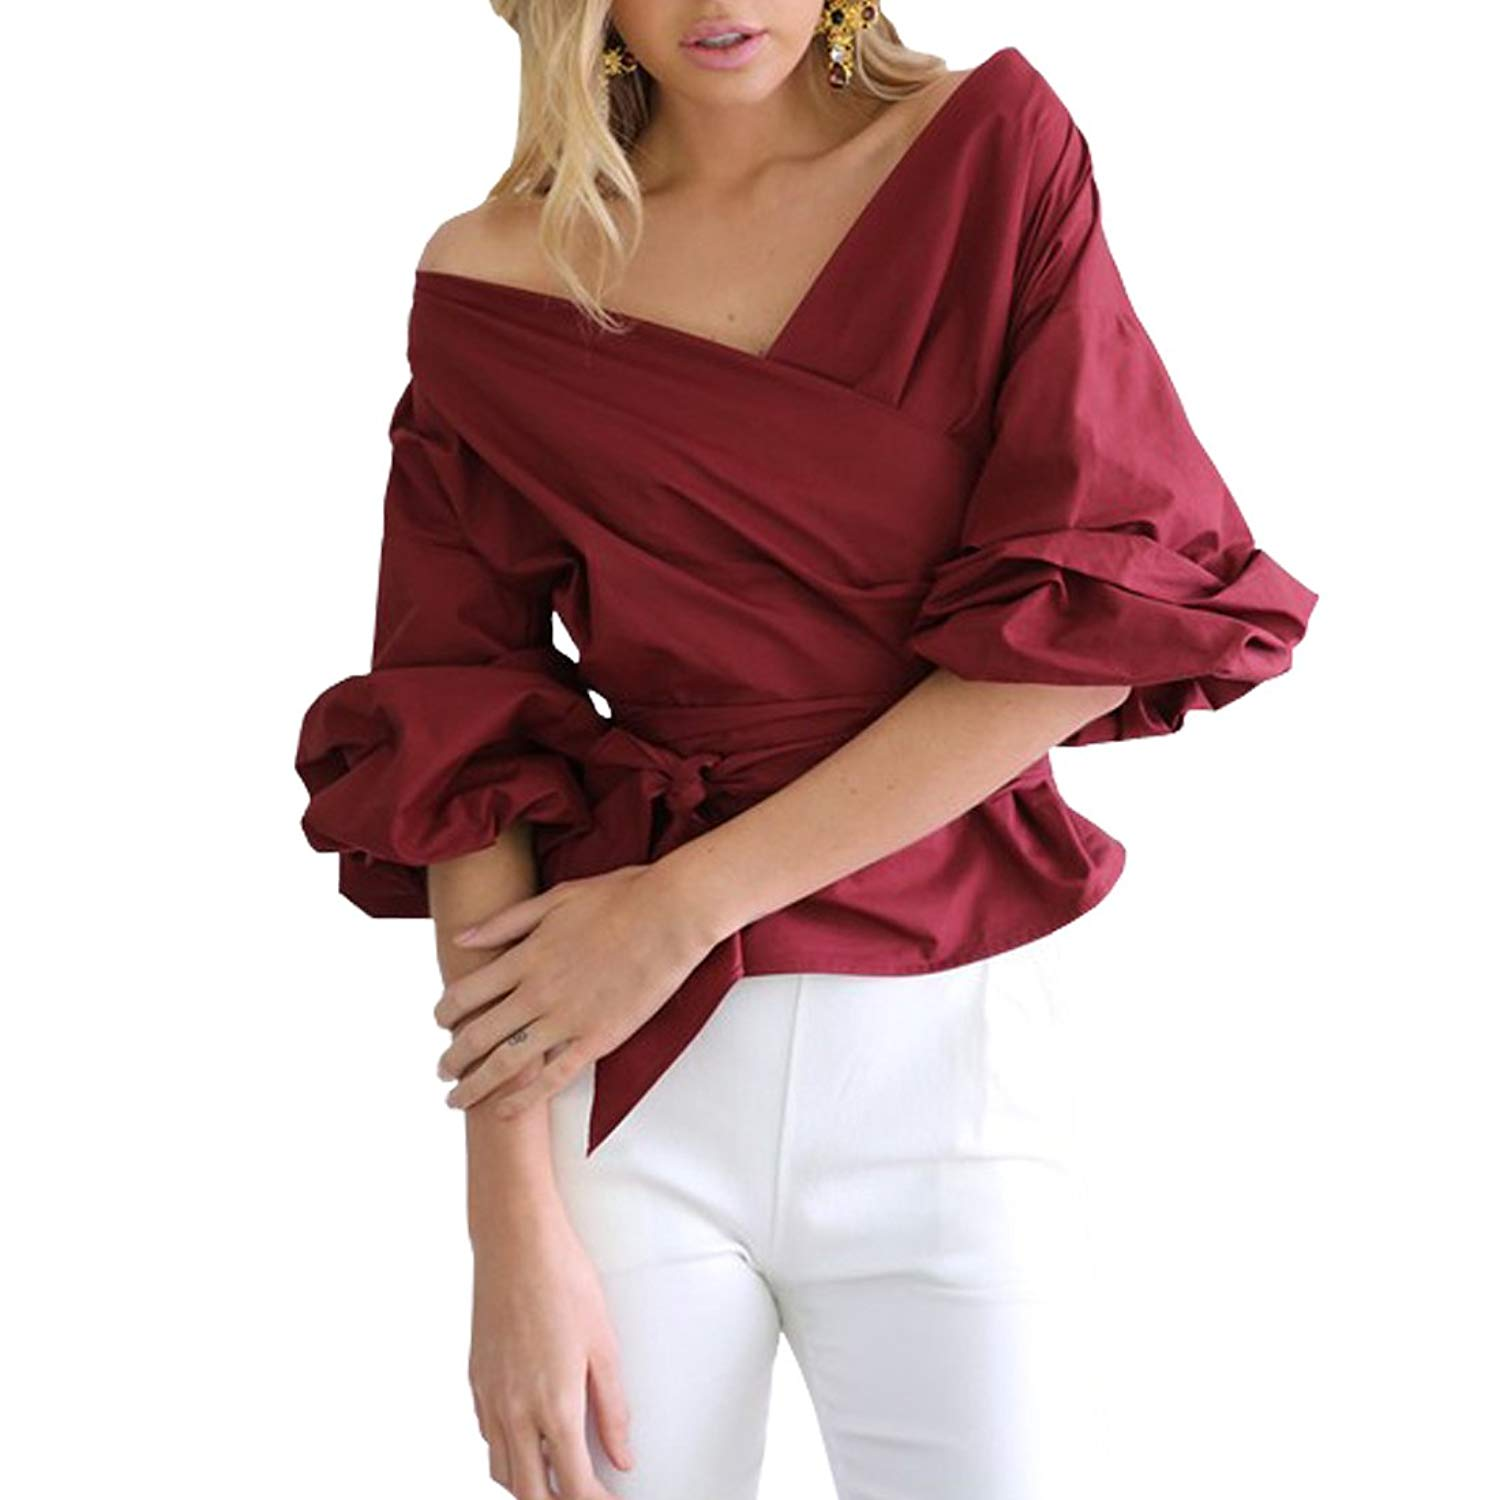 8b39f9525c665 Get Quotations · Weigou Woman T Shirts Bandage Sexy Wrap Chest Deep V-Neck  Tie Crop Top Half